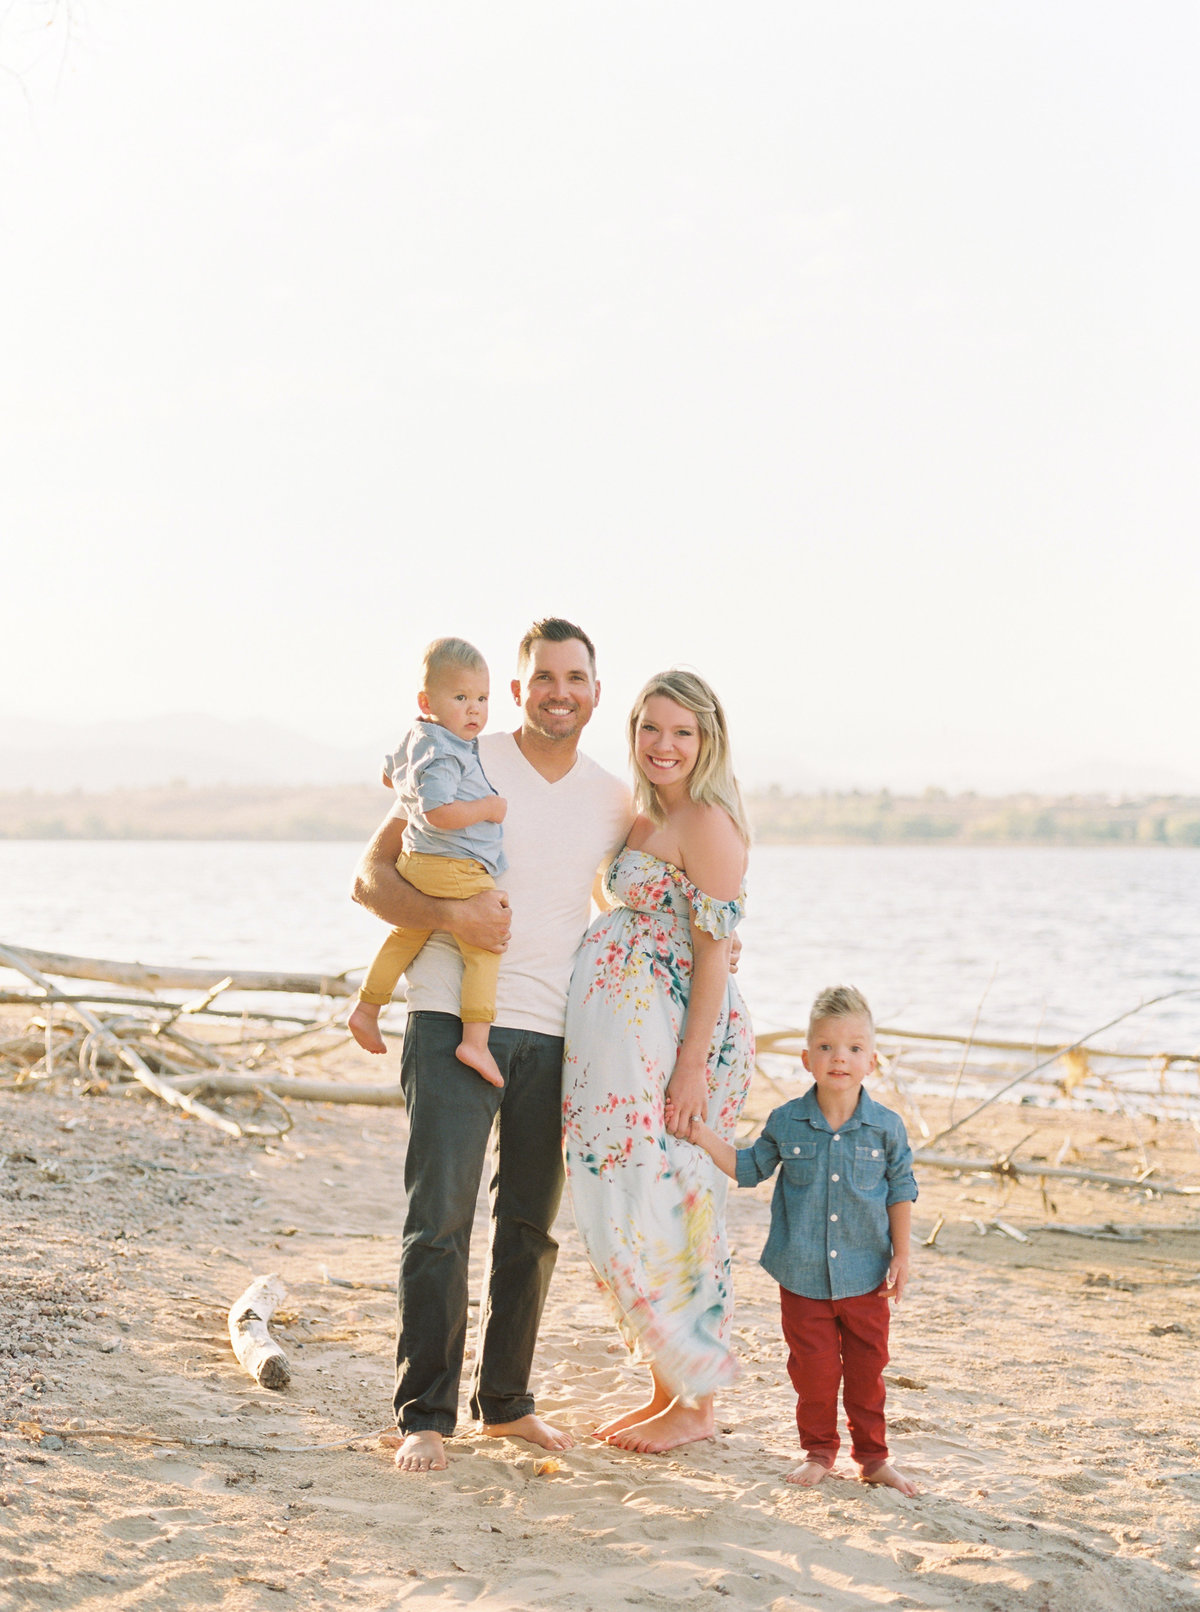 Littleton Colorado Family Maternity Photographer